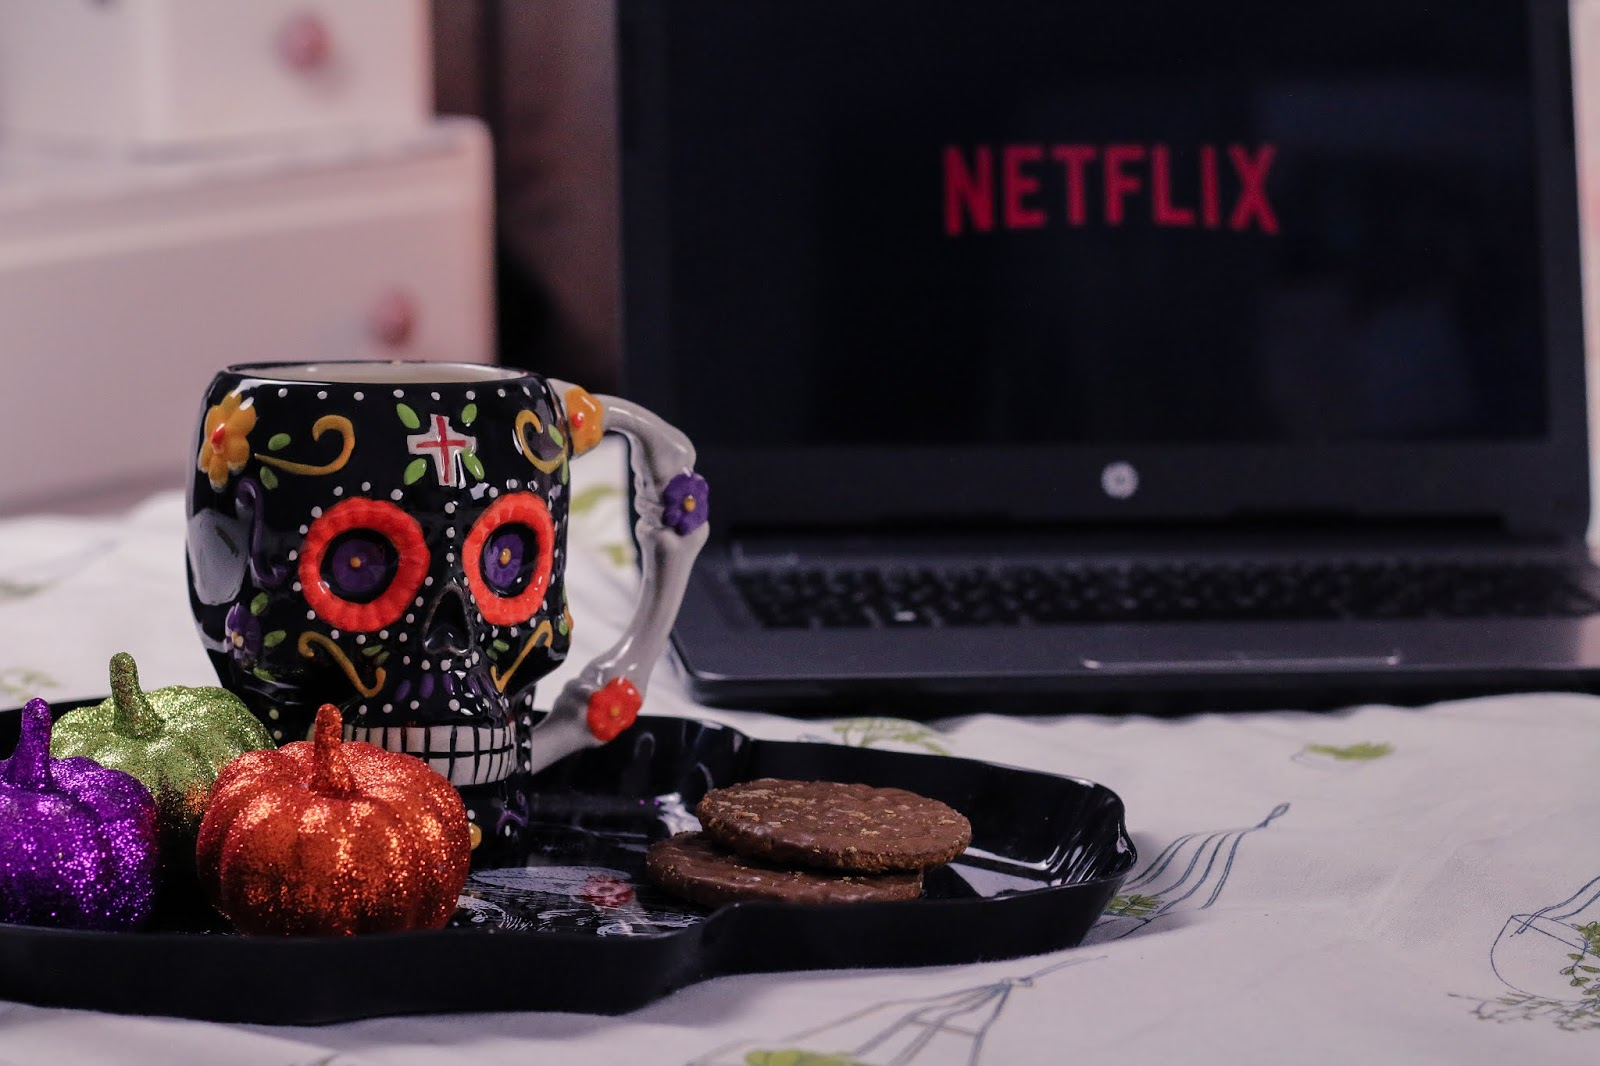 Close up of a sugar skull tea mug on a black skull tray with three pumpkin ornaments next to it, one orange, one green and one purple. The tray is sitting on a bed with a laptop in the background which is blurred as the mug is in focus, taken front on.